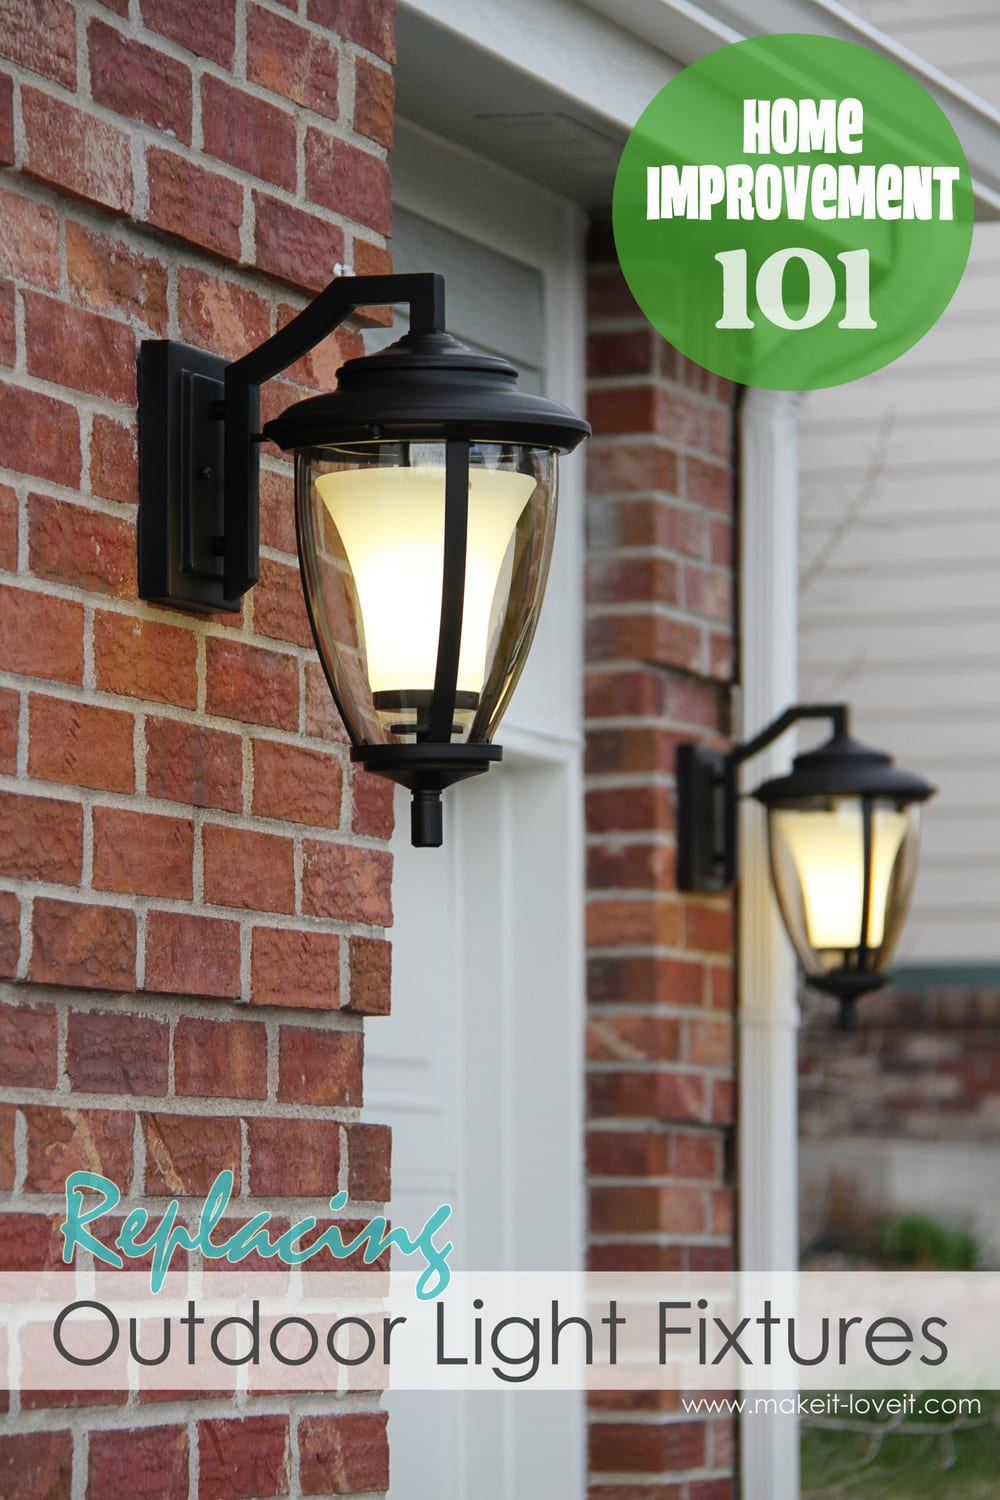 Home improvement replacing outdoor light fixtures dont be home improvement replacing outdoor light fixtures dont be scared make it and love it arubaitofo Image collections